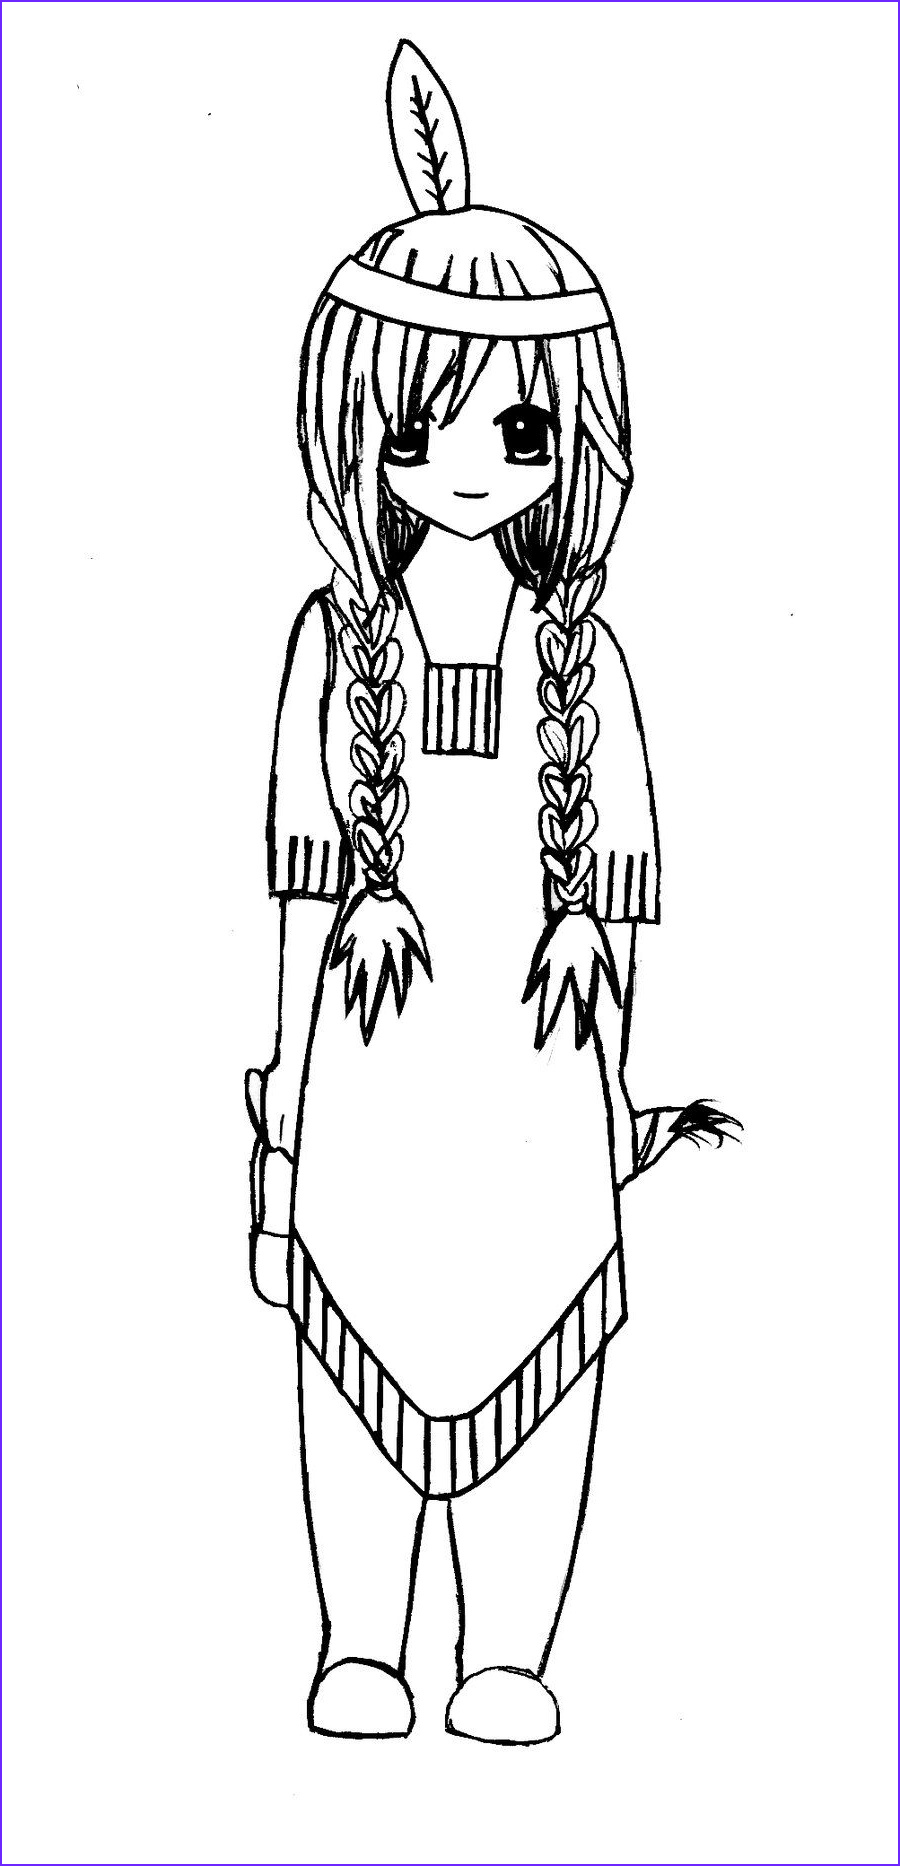 American Indian Coloring Pages Best Of Photos Image Result for Indian Coloring Pages